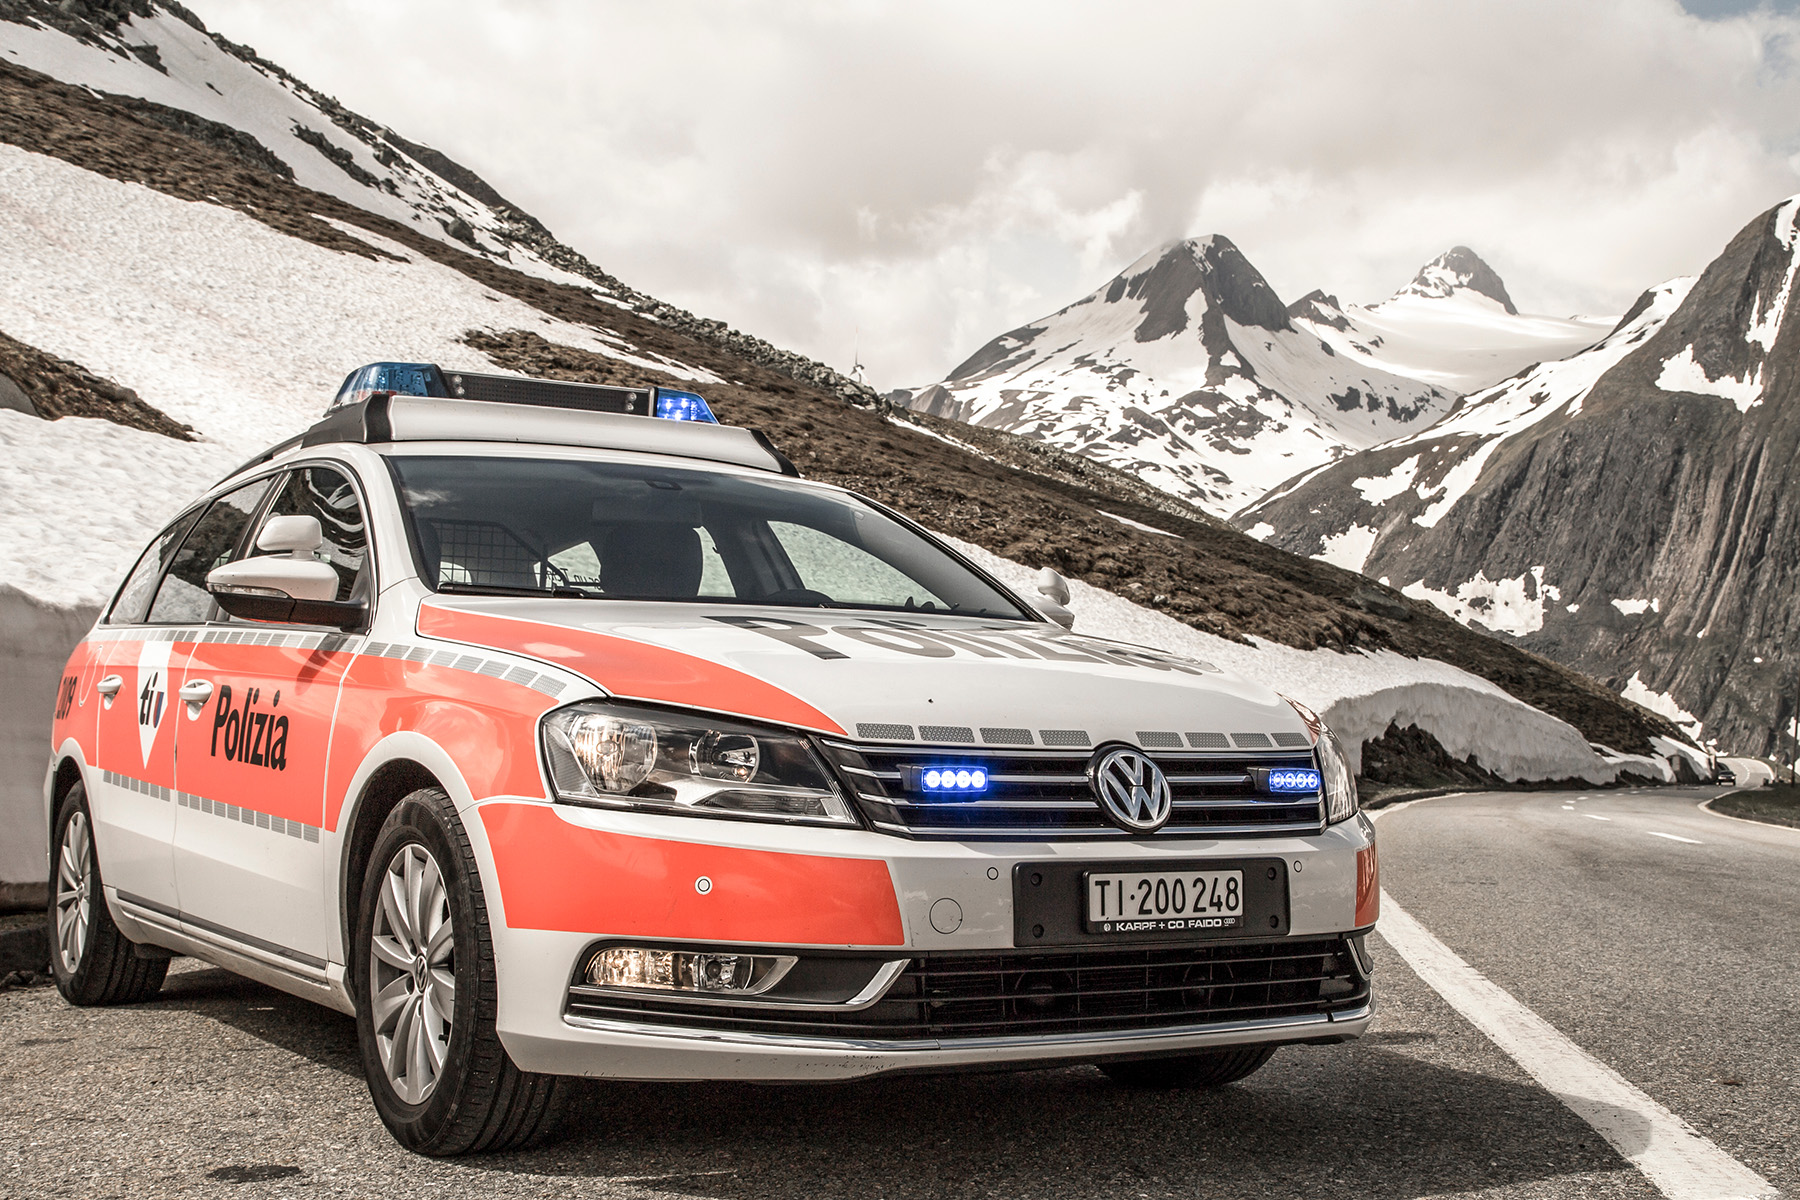 Police car in the mountains of Ticino